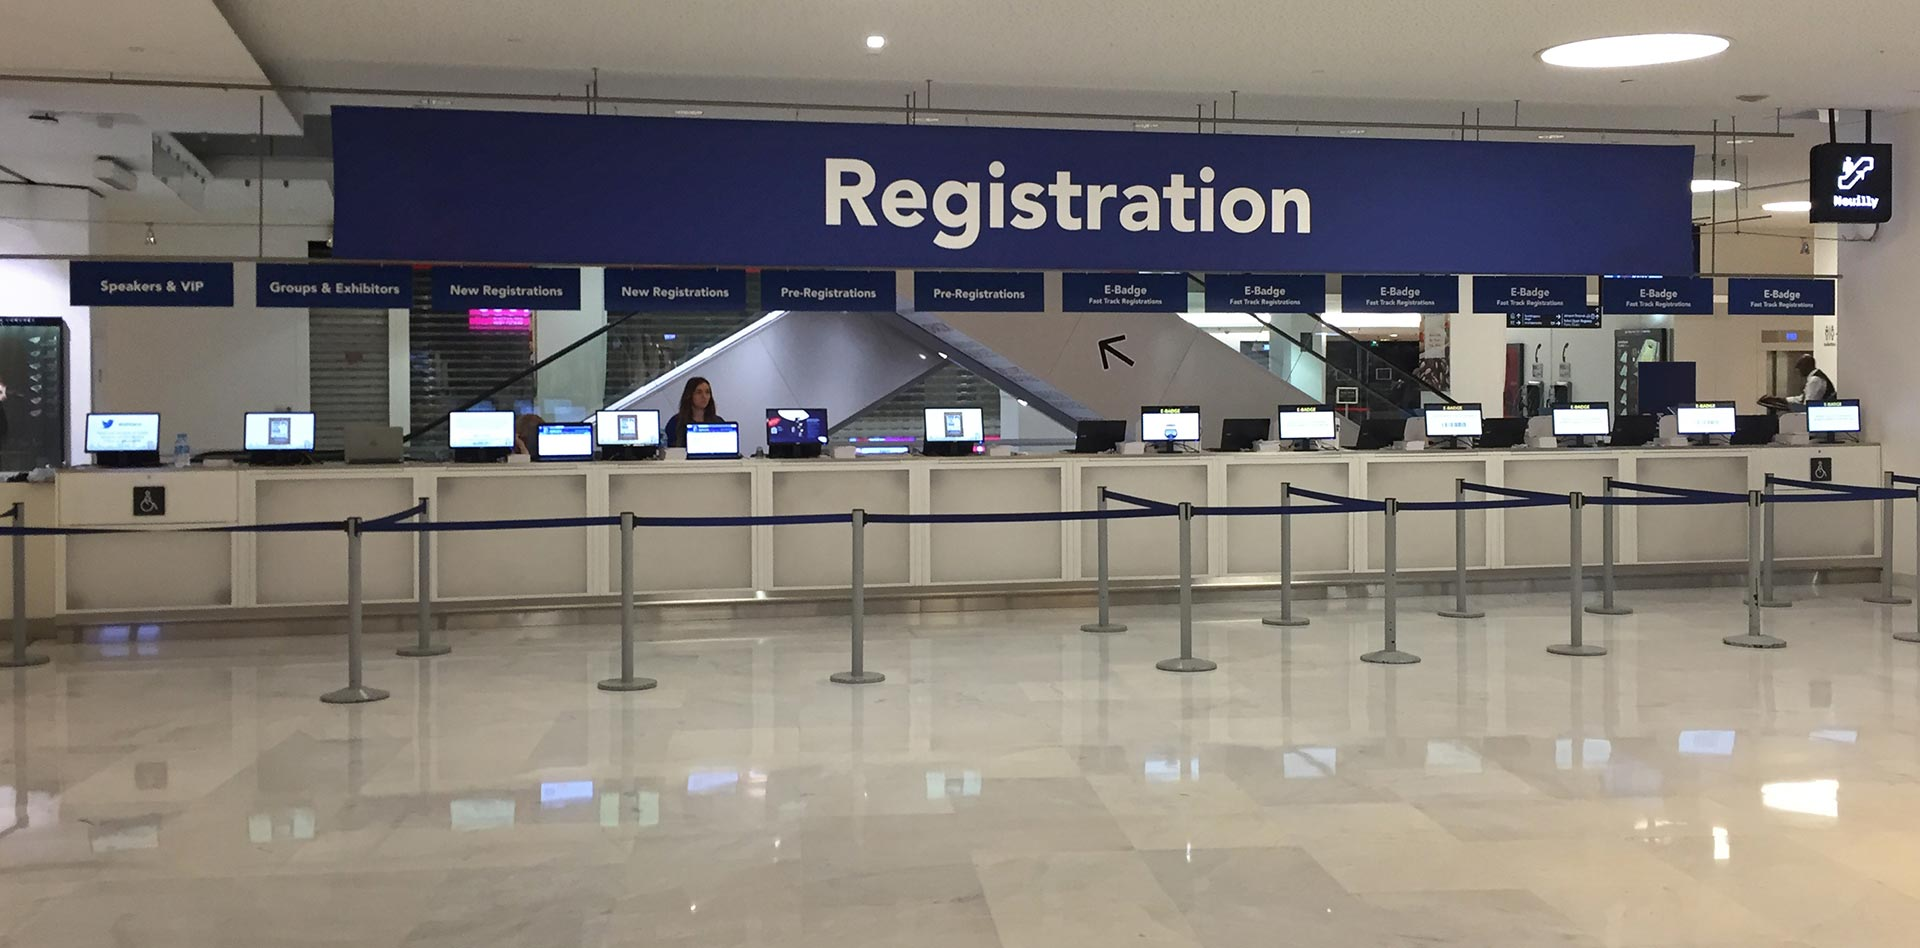 Registration and Badging for Conferences, Exhibitions and